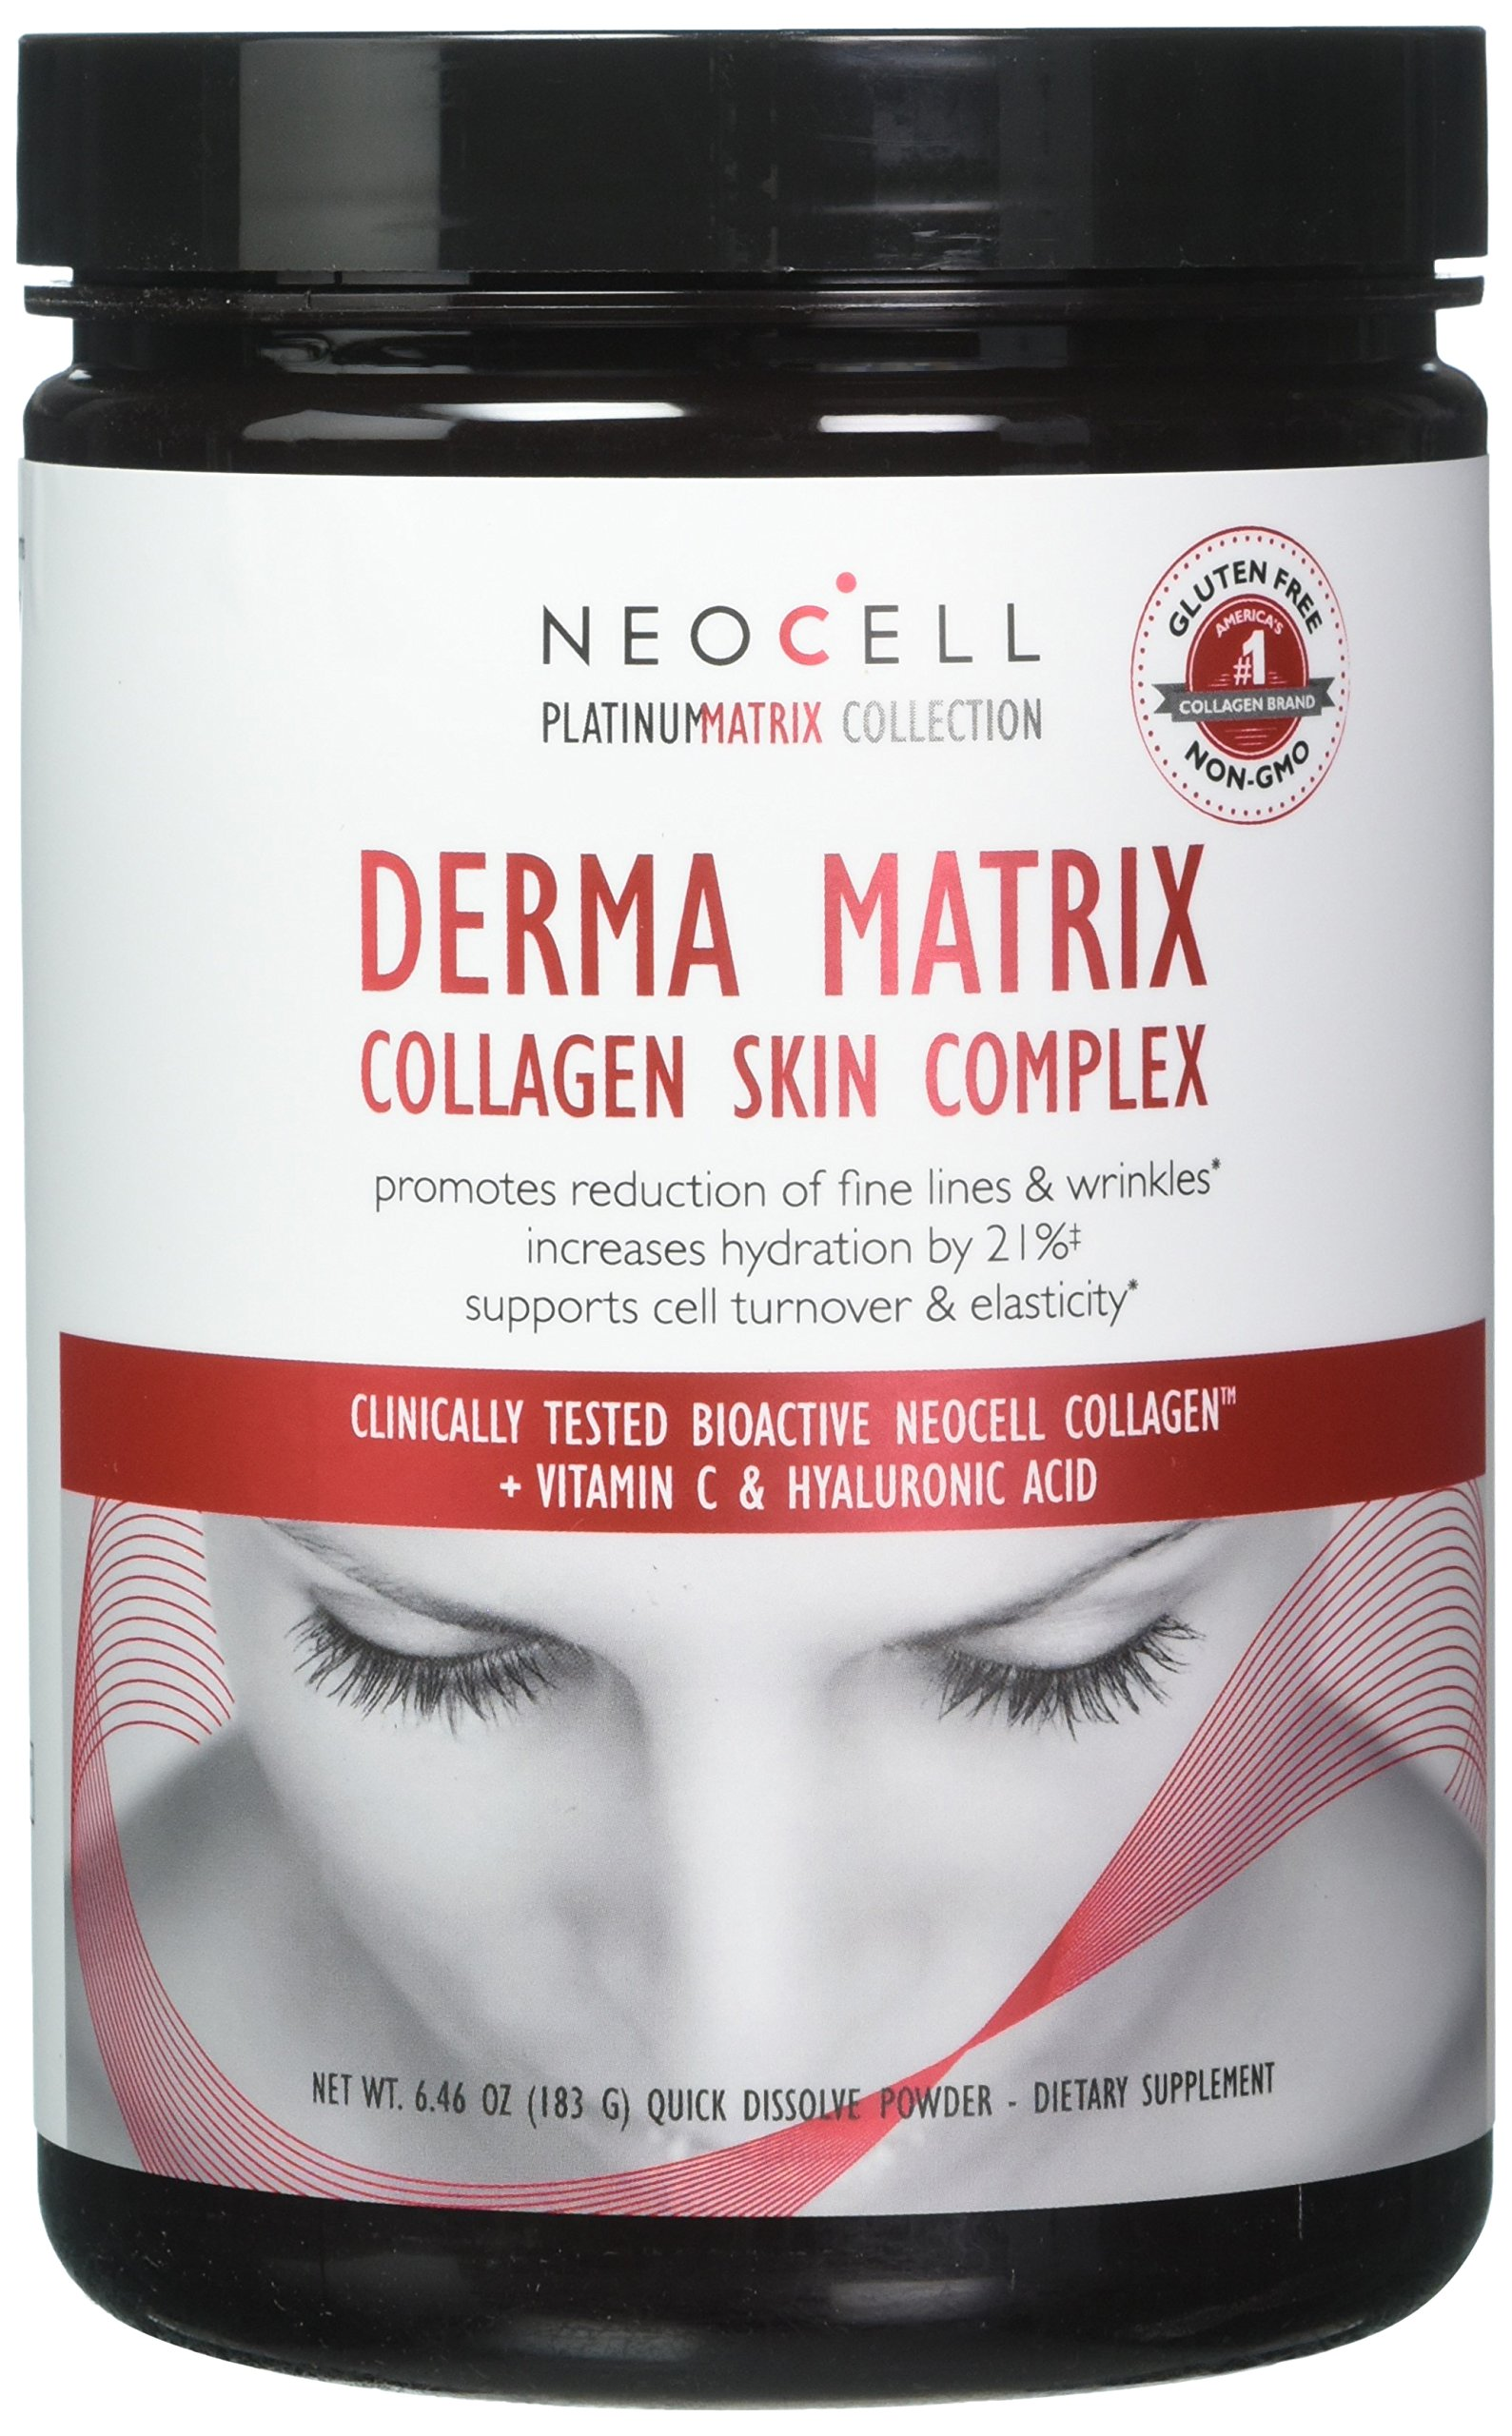 NeoCell - Derma Matrix - BioActive Collagen with Vitamin C and Hyaluronic Acid - 6.46 Ounces